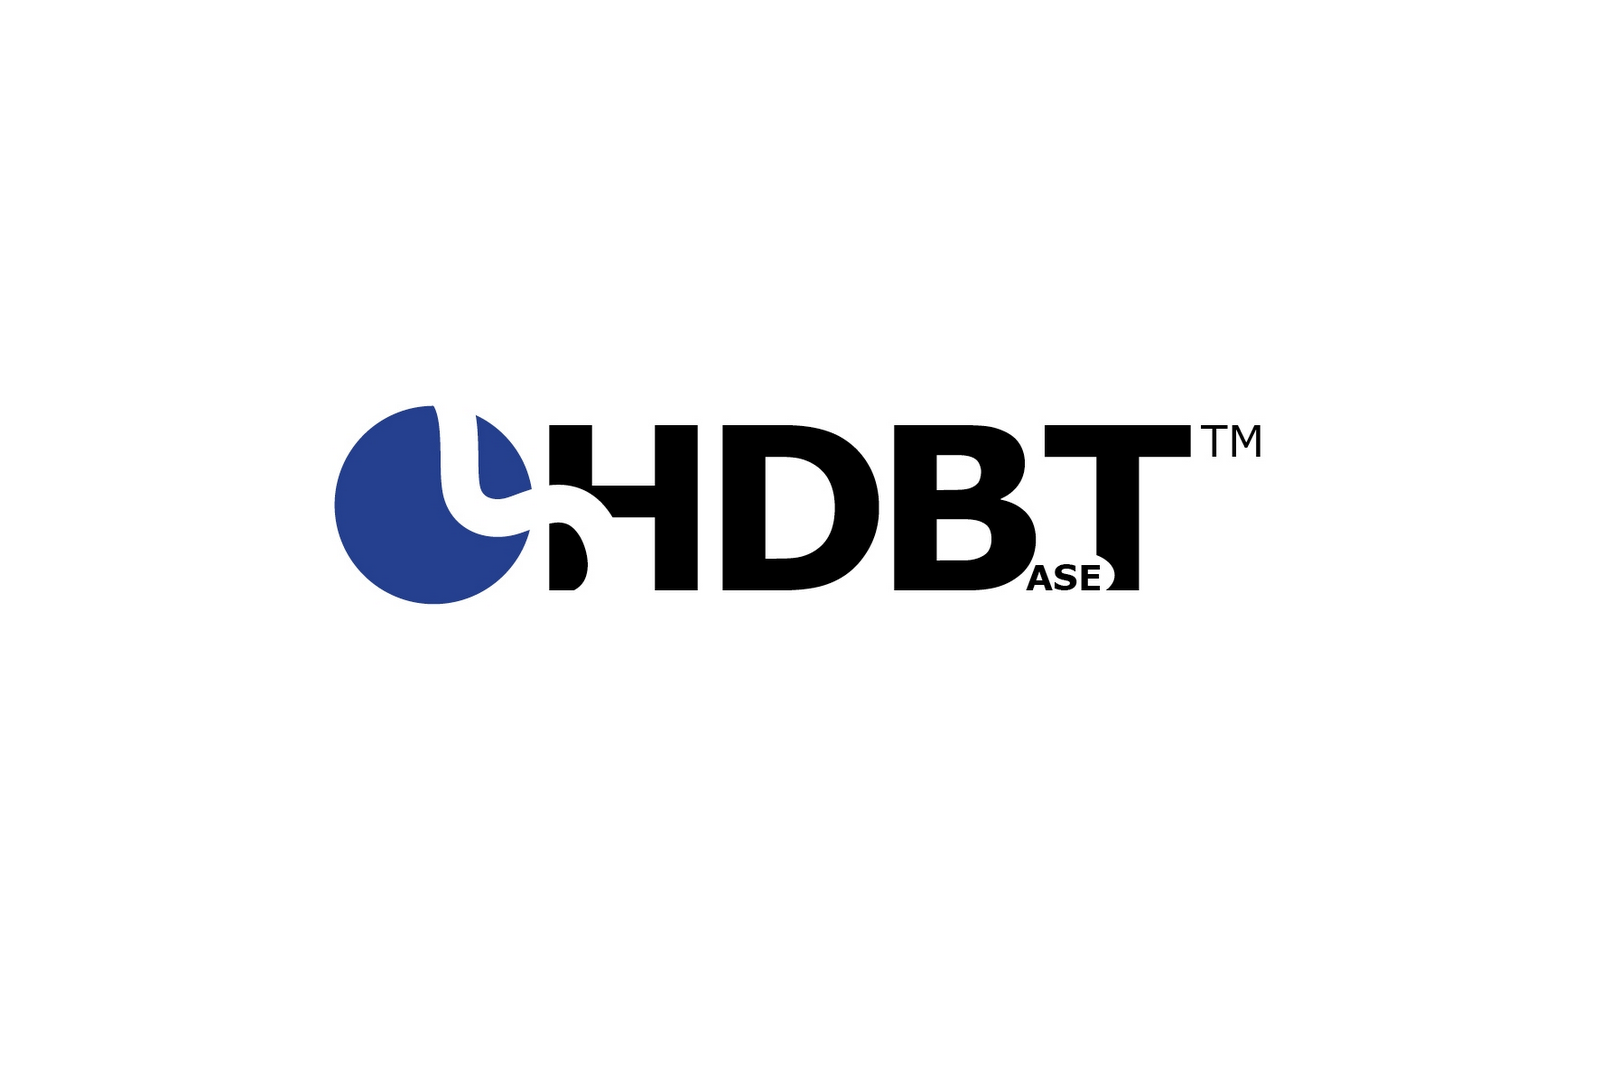 Hdbaset Png - HDBaseT Connects at Infocomm 2018 - AVNation